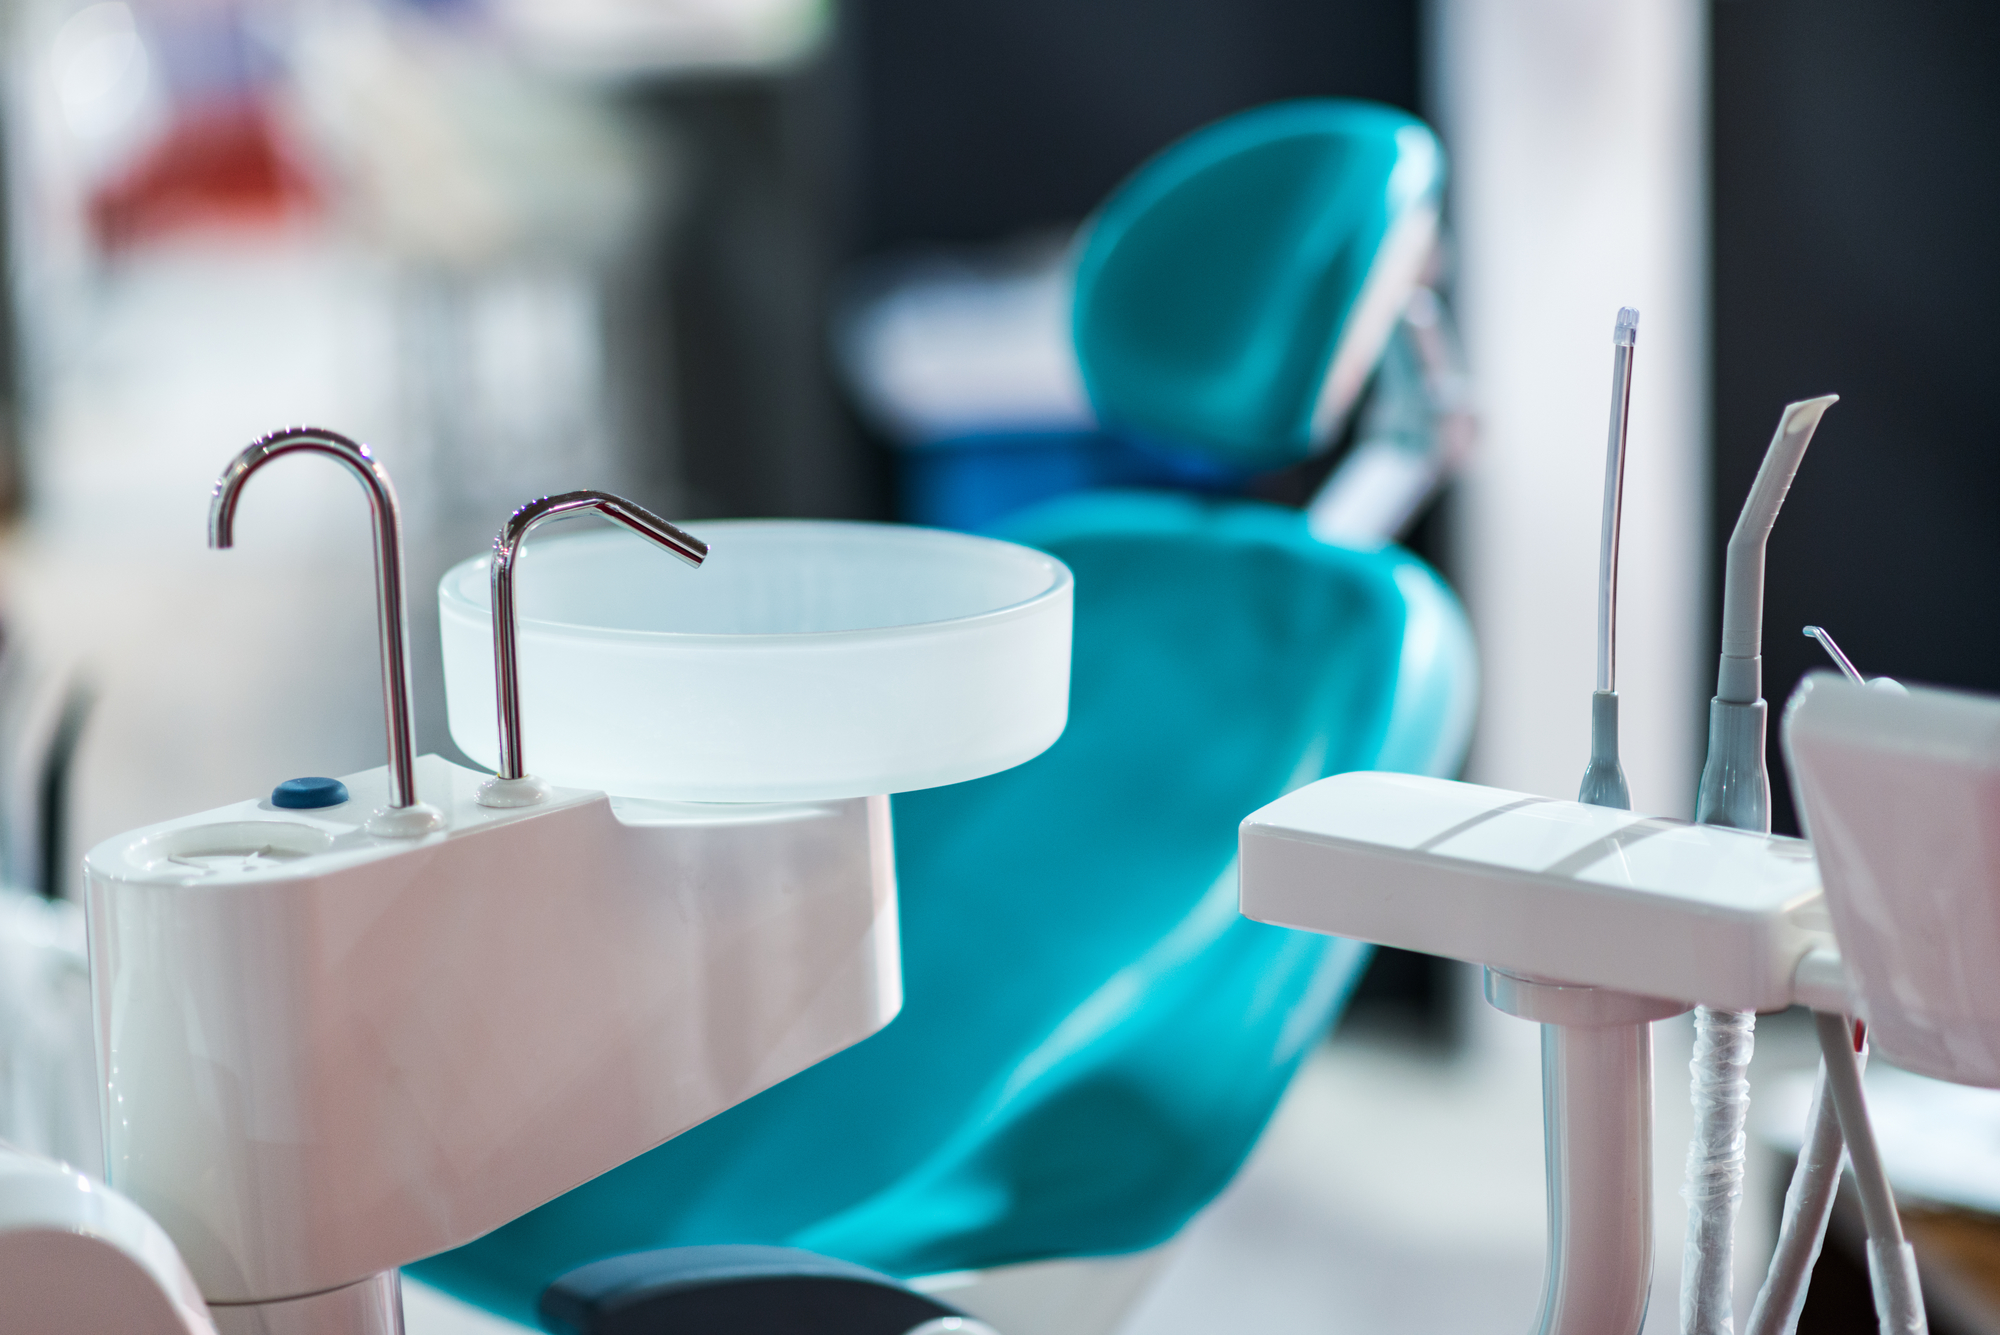 where is a great family dentist west palm beach?